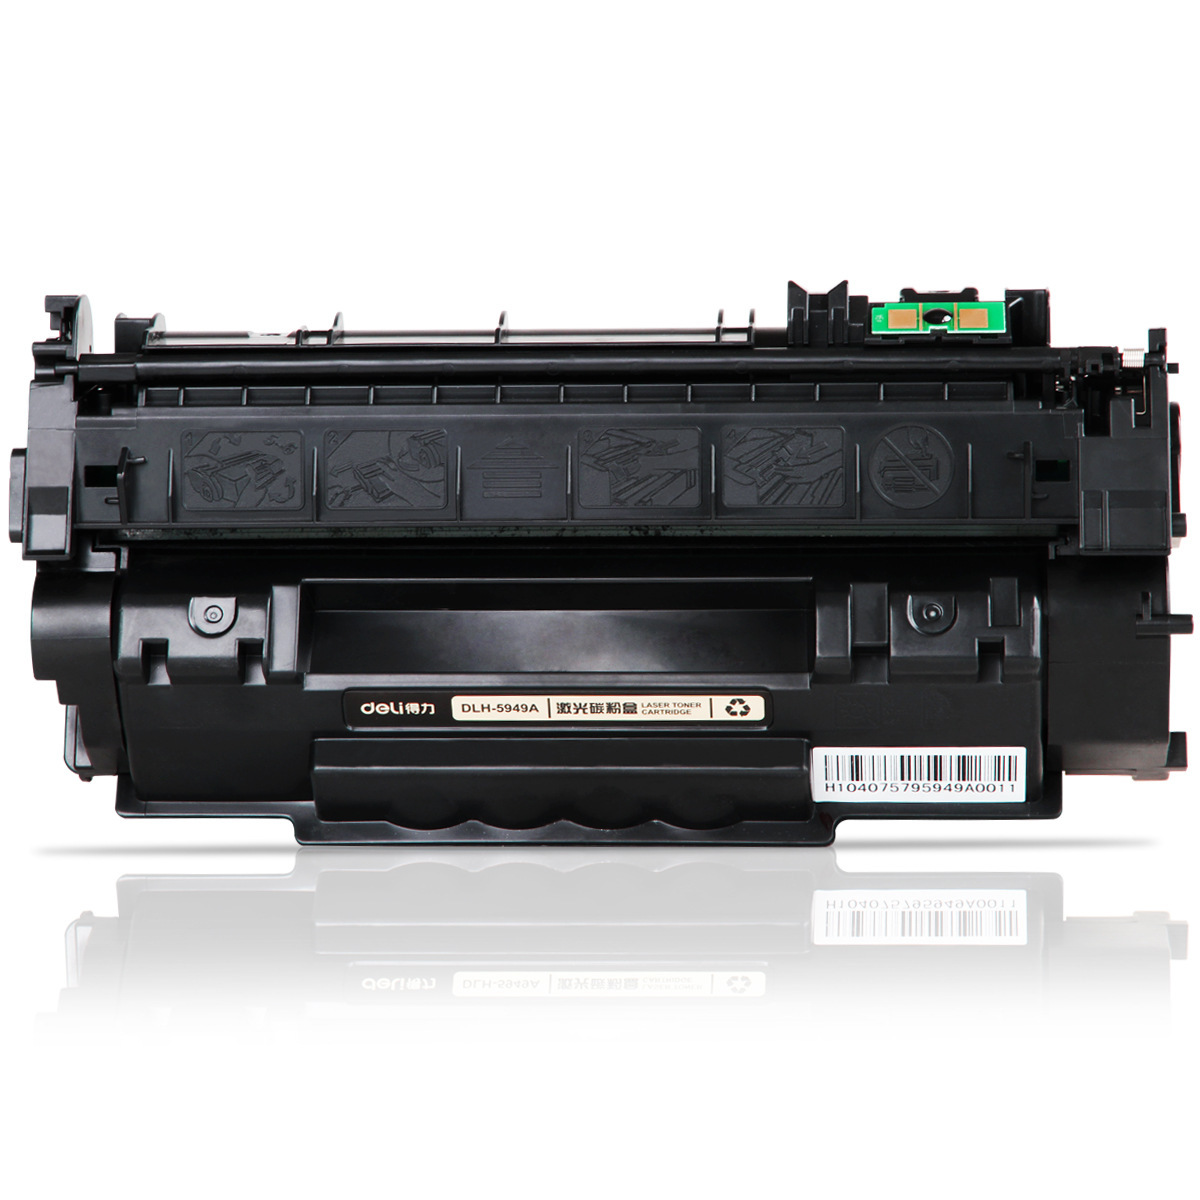 Hộp mực than  Effective DLH-5949A laser toner cartridge drum assembly Deli stationery wholesale Del